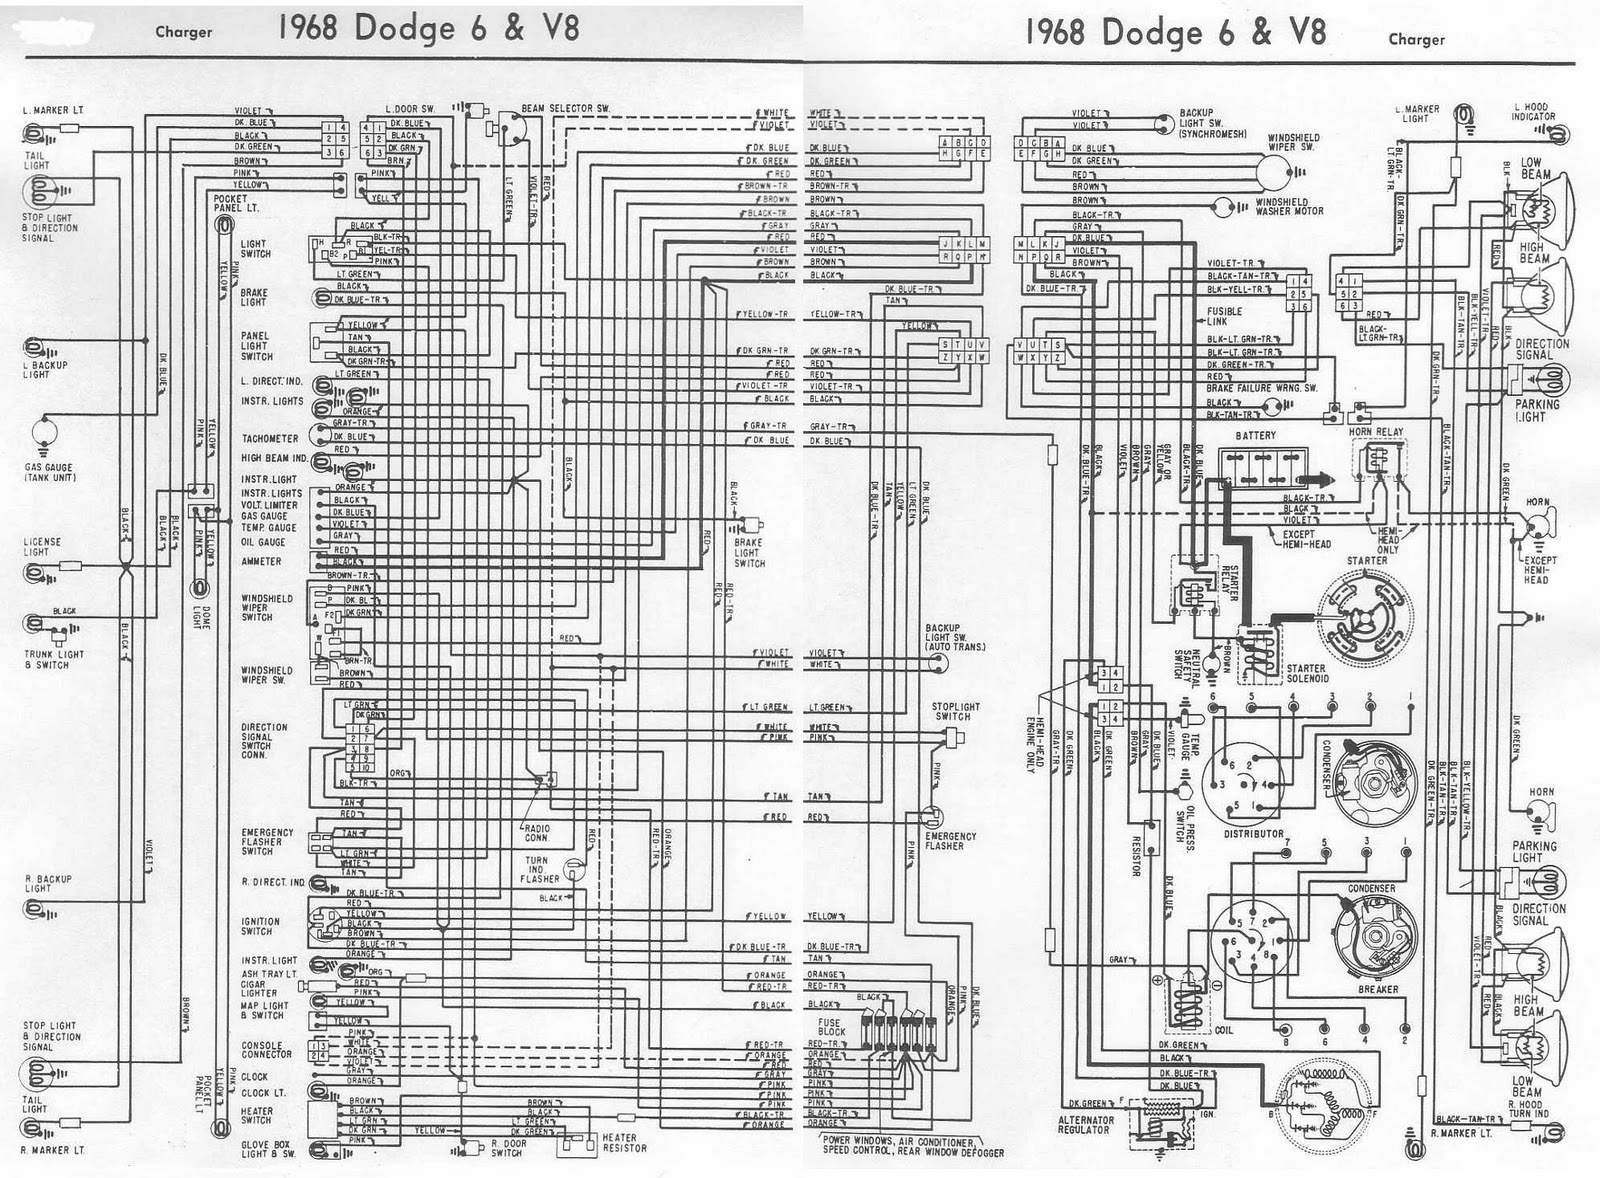 Dodge+Charger+1968+6+and+V8+Complete+Electrical+Wiring+Diagram dodge charger wiring diagram dodge wiring diagrams instruction 1970 dodge coronet wiring diagram at soozxer.org